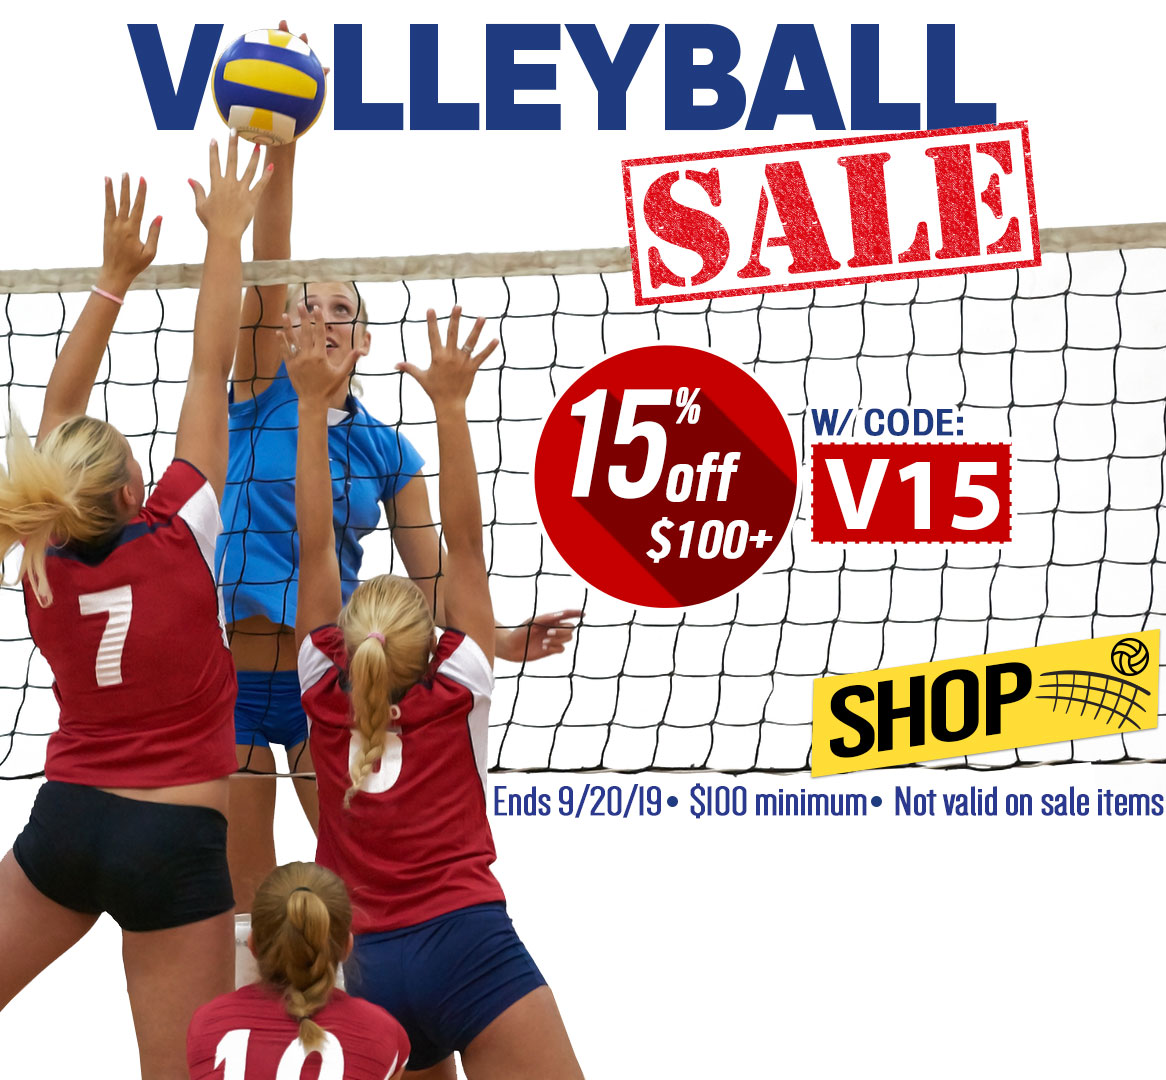 Volleyball Equipment Sale. Save 15%.